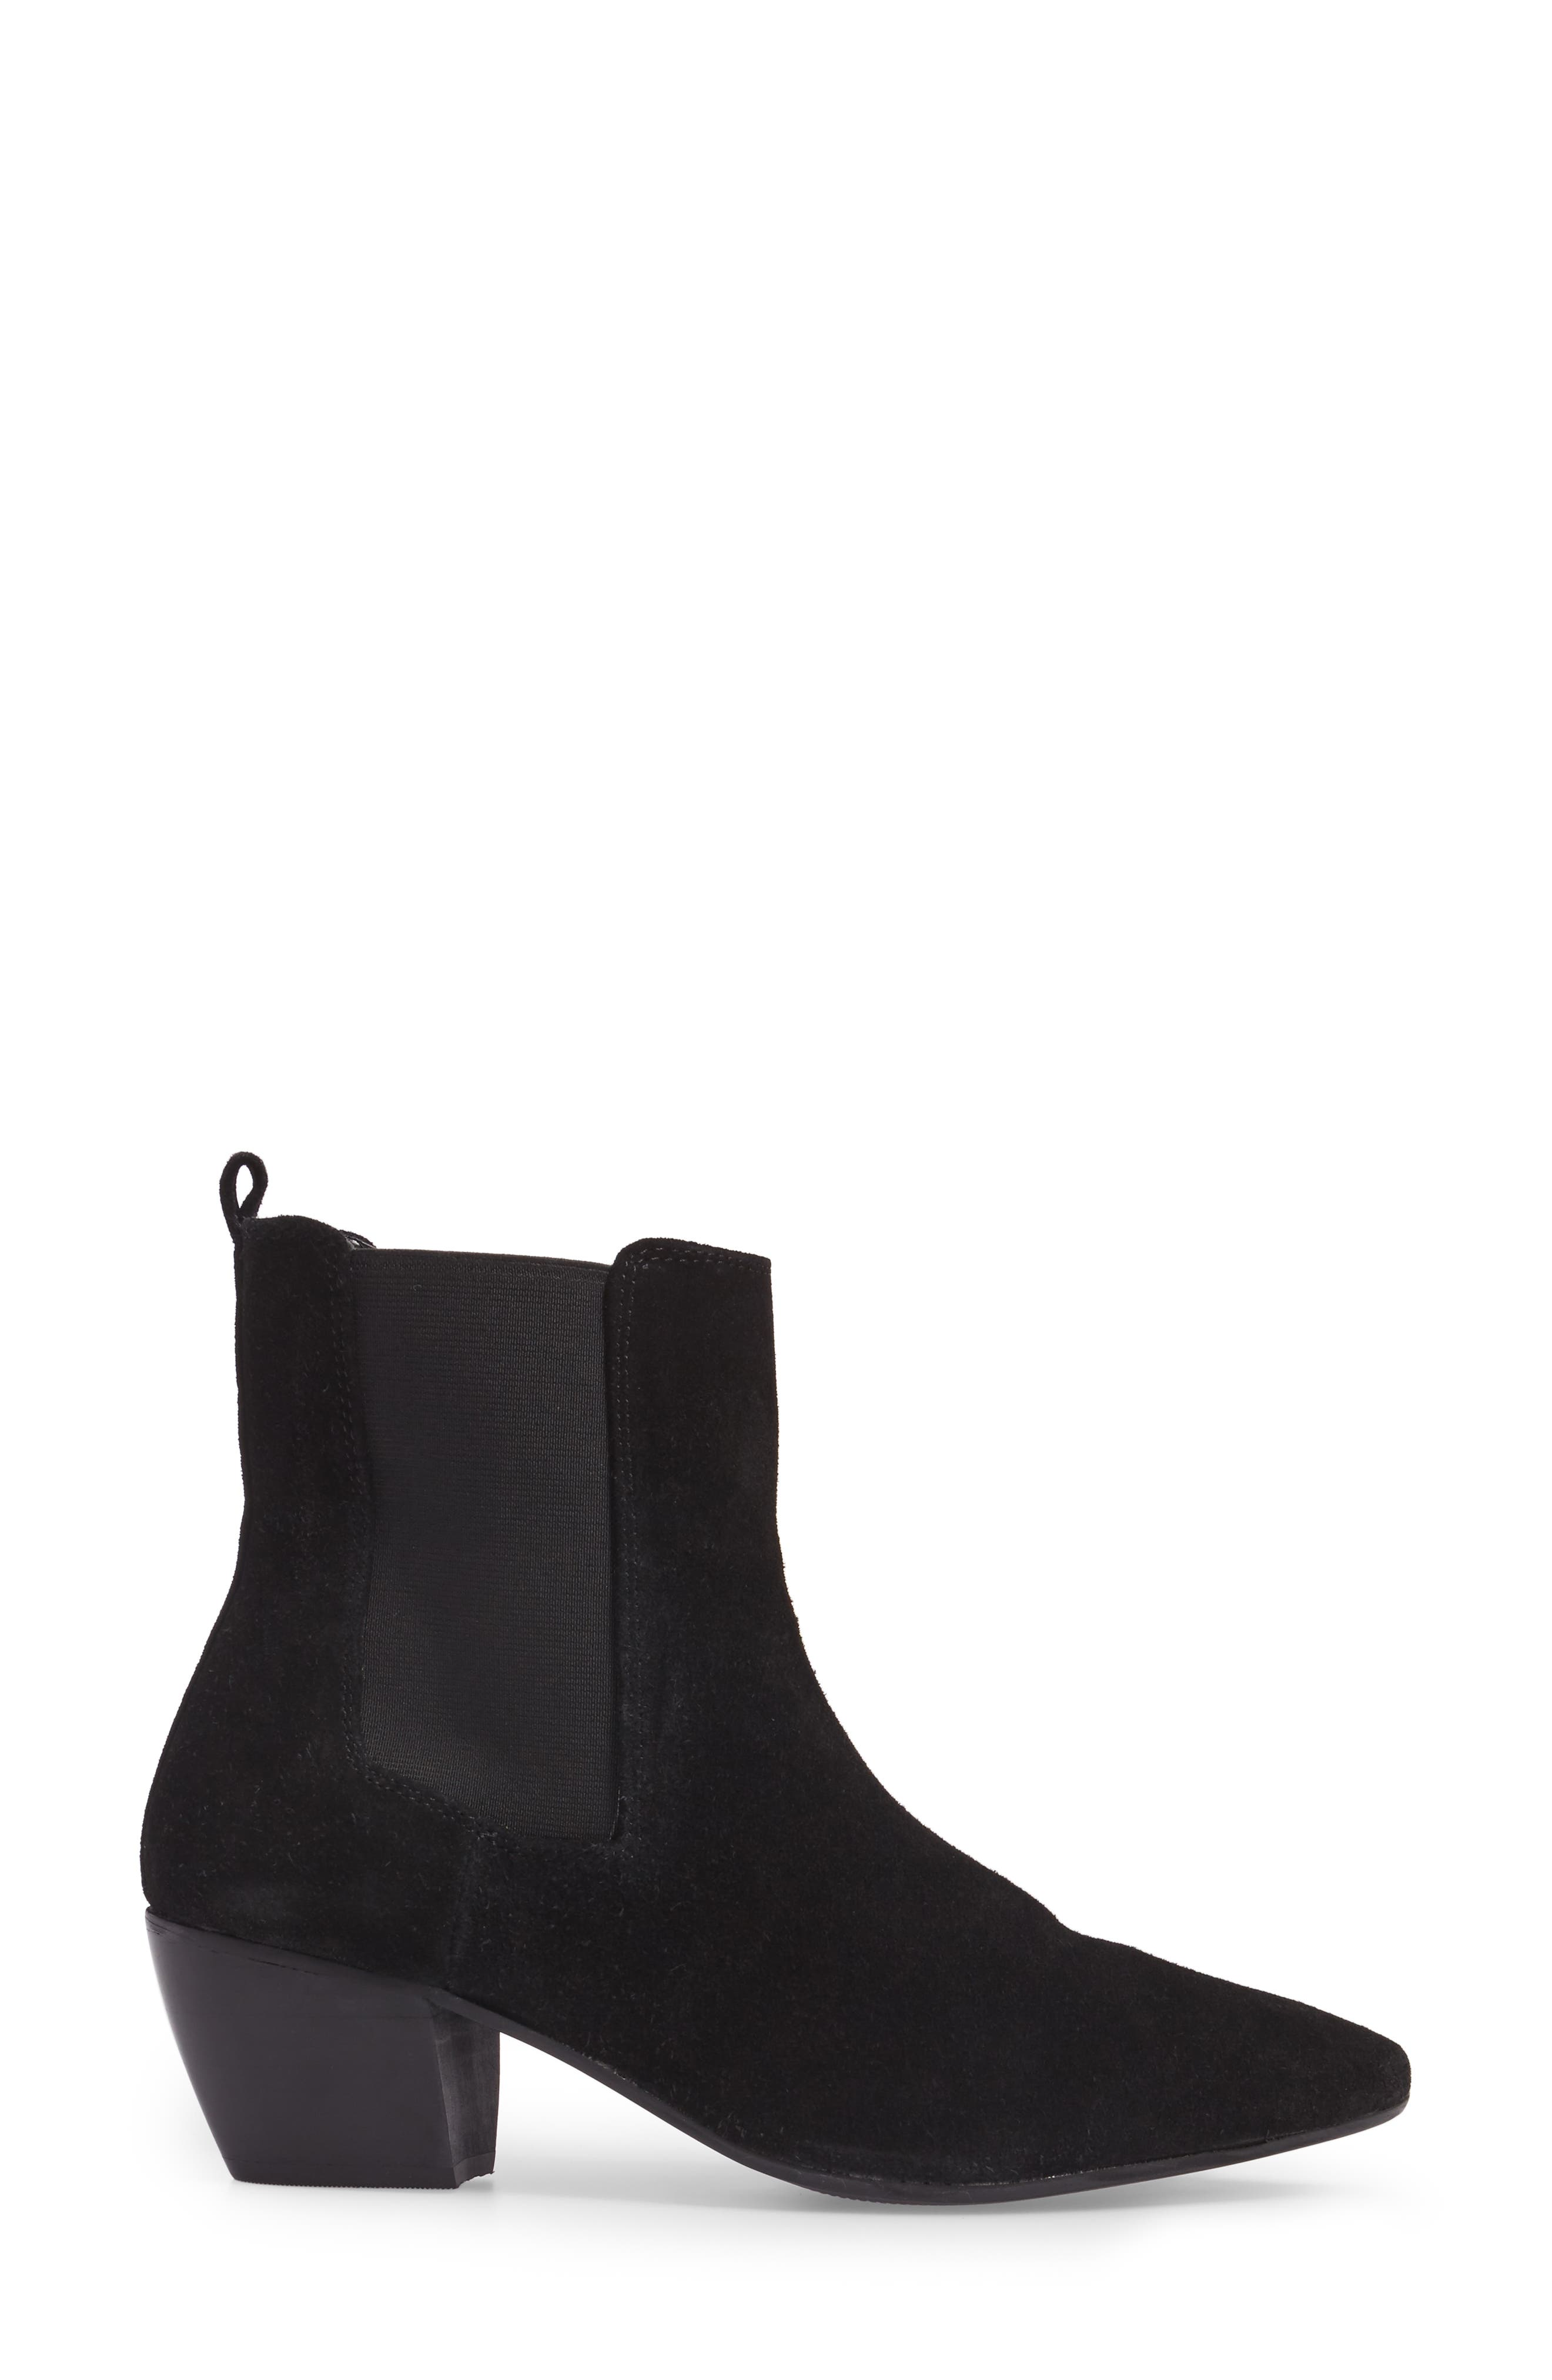 Bounty Suede Pointy Toe Bootie,                             Alternate thumbnail 3, color,